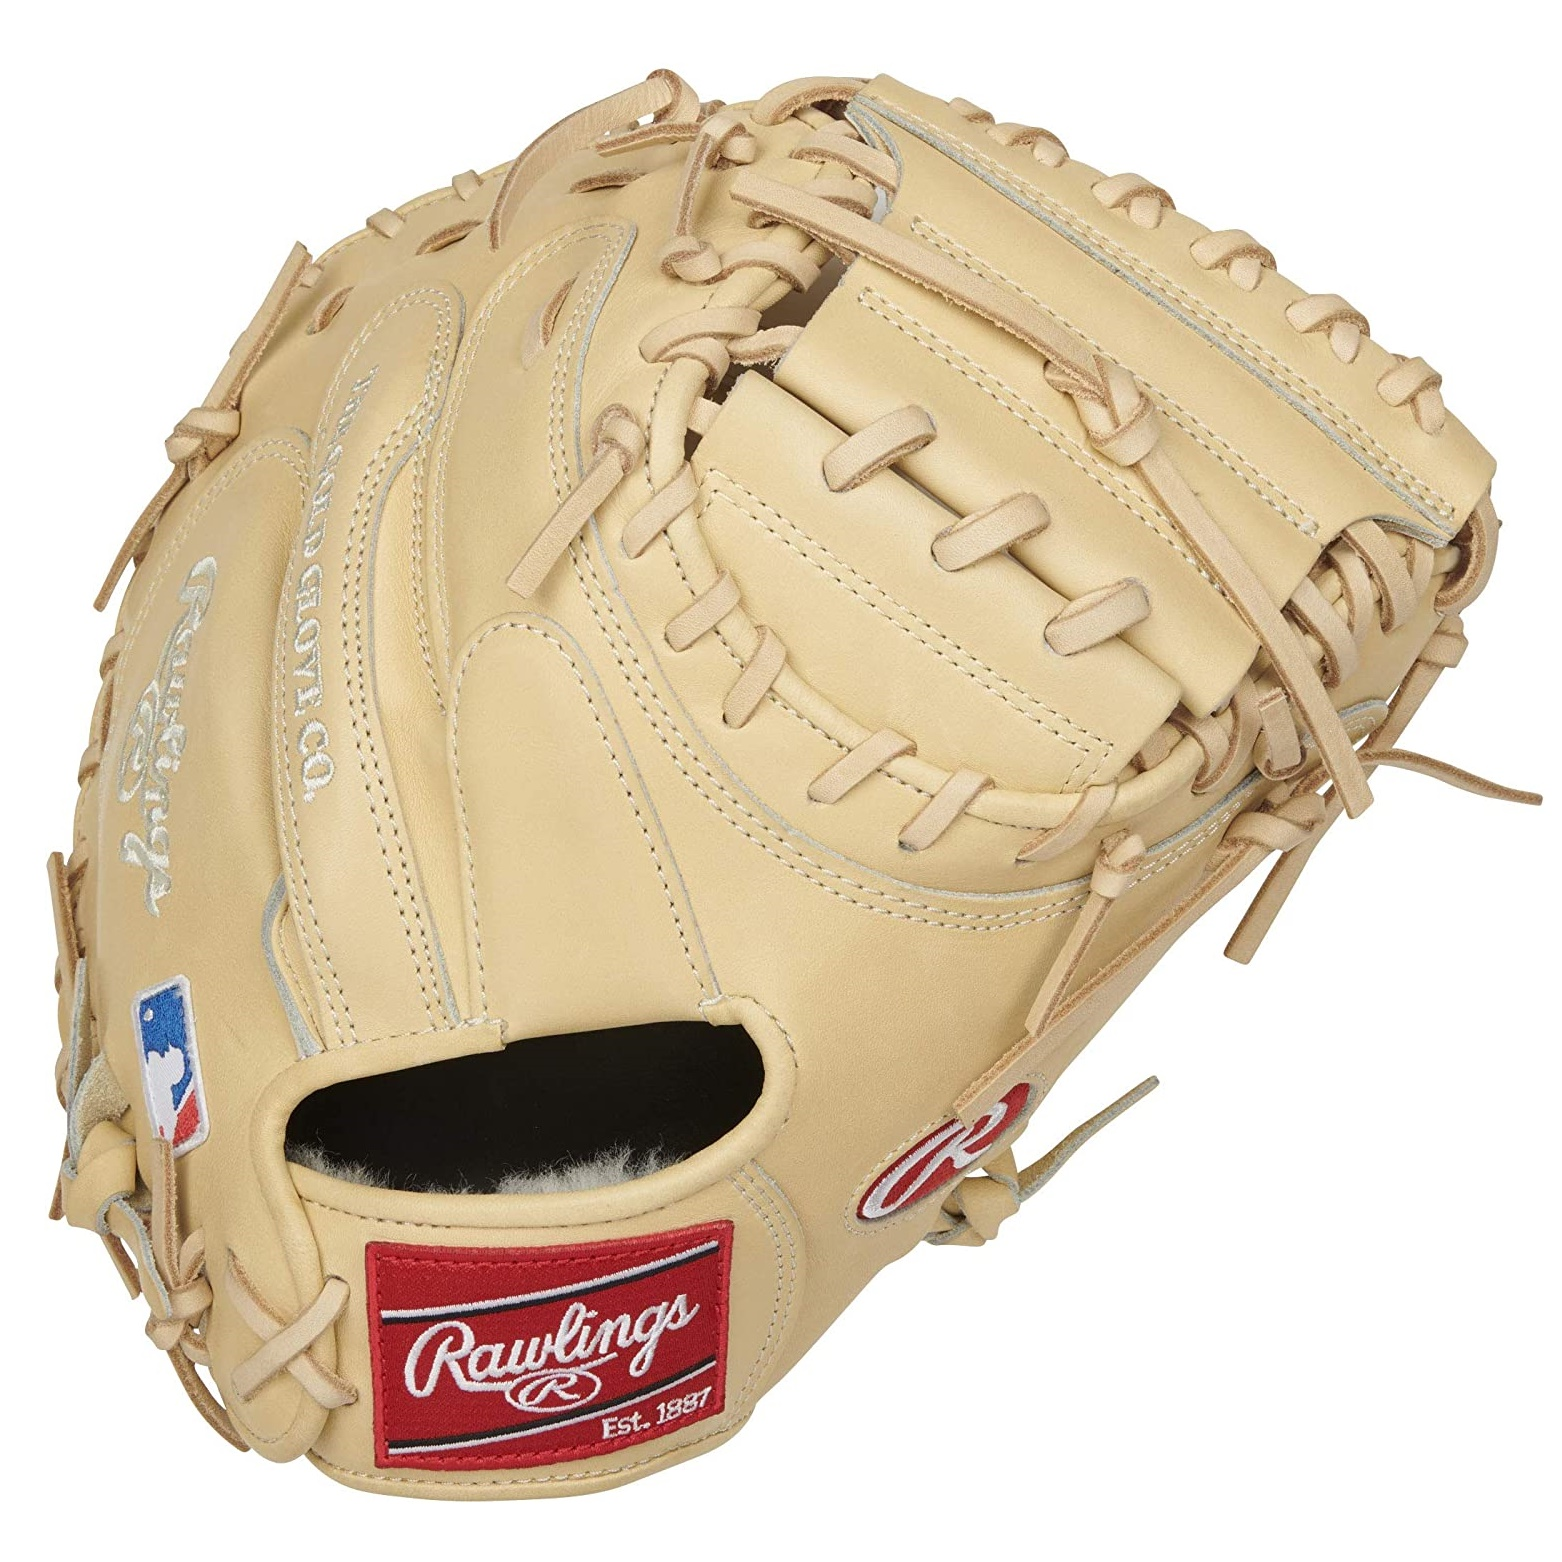 Become the next great behind the plate with the 2021 Pro Preferred 34-inch catcher's mitt. It's crafted from our flawless, full-grain kip leather, known for its unparalleled pro level quality and feel. This glove's CM43 pattern also offers a narrow, deep pocket for optimal control when you frame pitches too. In addition, all our Pro Preferred mitts feature world-class comfort thanks to our Pittards sheepskin palm lining. This luxurious liner gives you superior feel, and wicks away moisture so your hand stays dry. Its wool wrist strap and padded thumb sleeve also offer added comfort every time you put it on, and the wool padding allows you to break-in and form your perfect pocket. As a result, you get a premium quality mitt to help you dominate every pitch behind the plate. This clean, camel Pro Preferred catcher's mitt is designed for elite catchers looking for a glove that can perform to their abilities. See why more pros choose Rawlings than any other brand, buy now!  Color:   Camel  Throwing Hand:   Right  Sport:   Baseball  Back:   Conventional  Player Break-In:   70  Fit:   Standard  Level:   Adult  Lining:   Pittards Sheep Skin  Padding:   100% Wool Blend  Series:   Pro Preferred  Shell:   Kip Leather  Web:   1-Piece Solid  Size:   34 in  Pattern:   CM43  Age Group:   Pro/College, High School, 14U